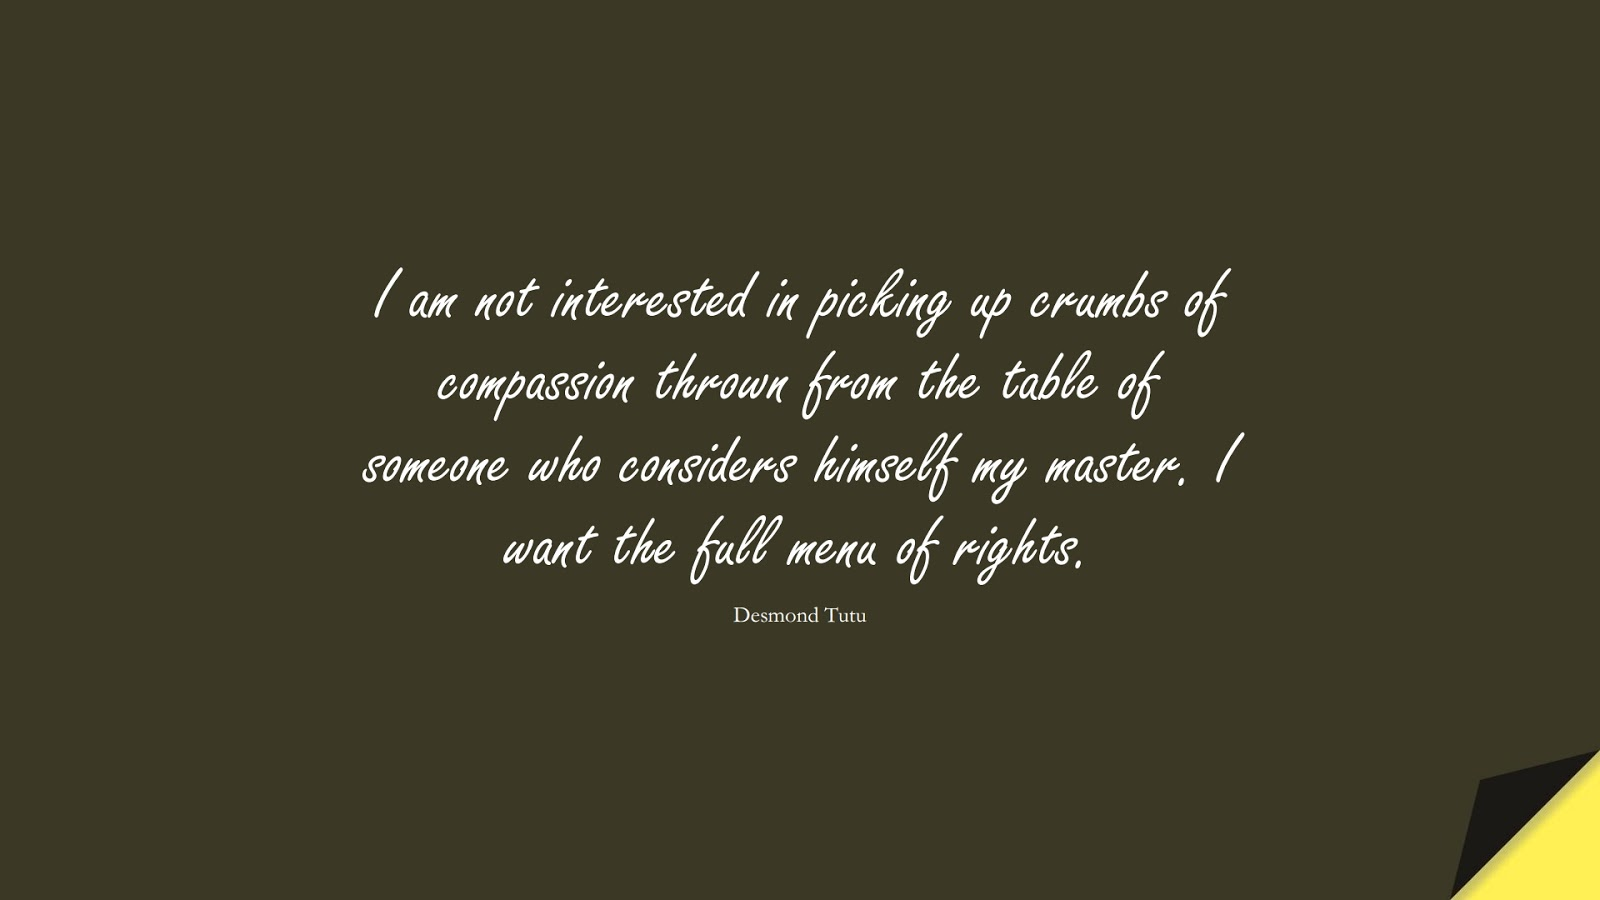 I am not interested in picking up crumbs of compassion thrown from the table of someone who considers himself my master. I want the full menu of rights. (Desmond Tutu);  #HumanityQuotes